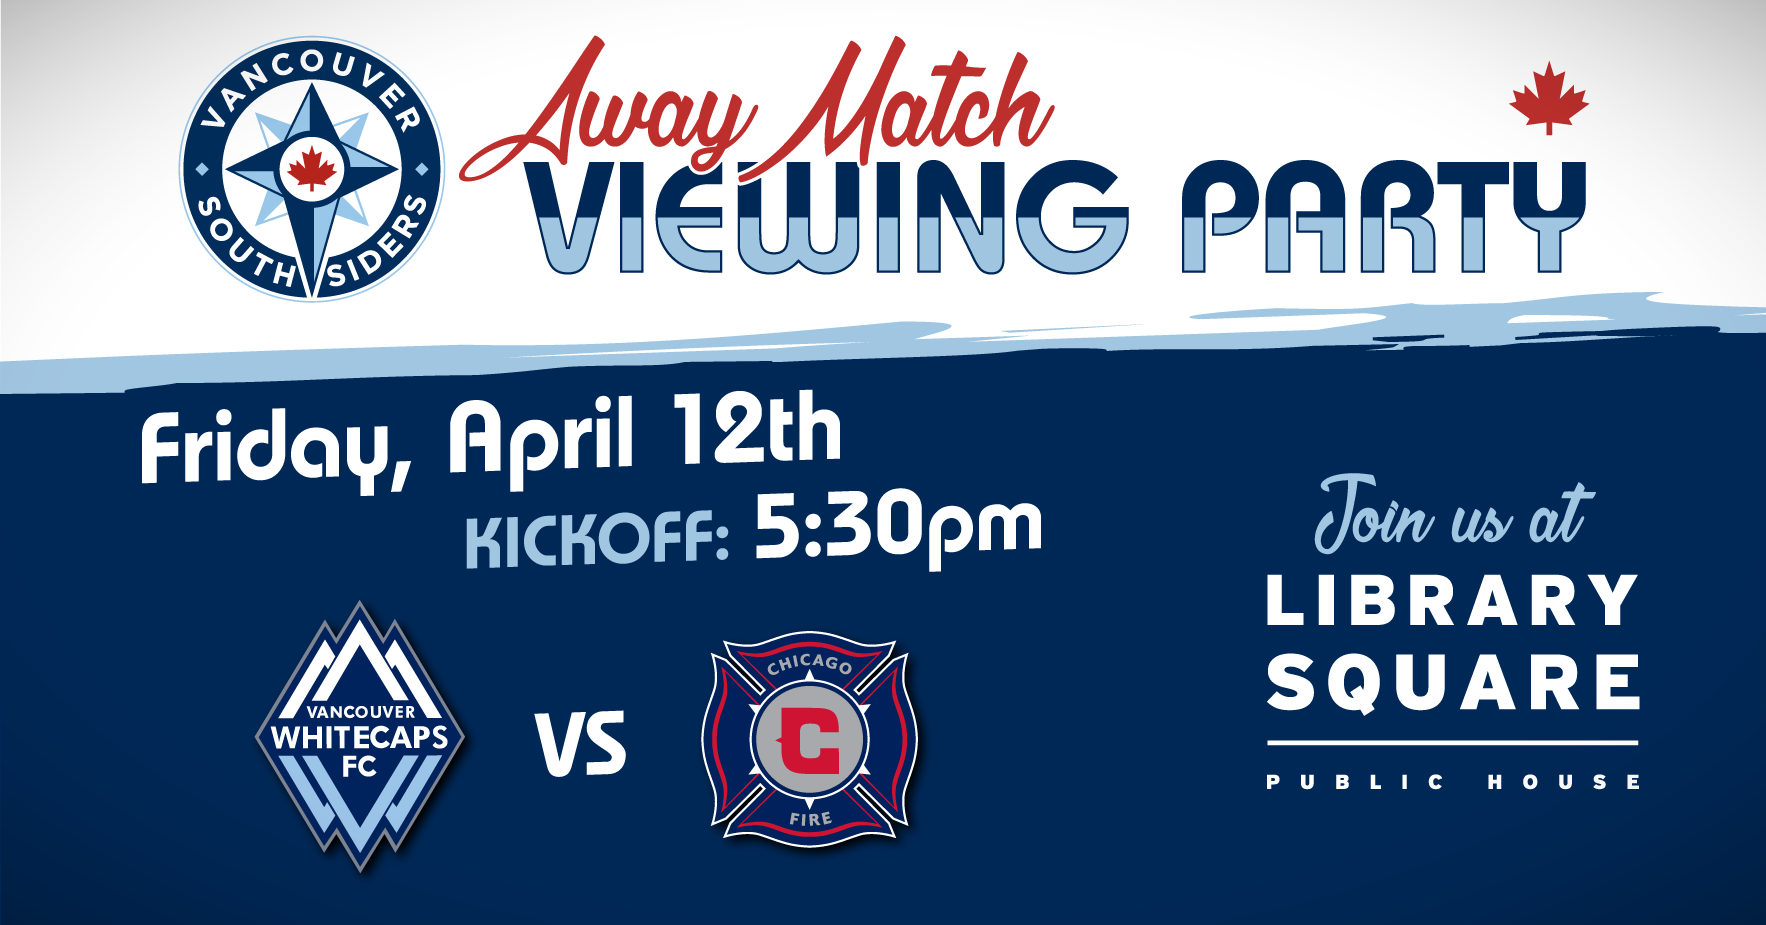 Away match viewing party at Library Square: Whitecaps at Chicago Fire. Kickoff 5:30pm.